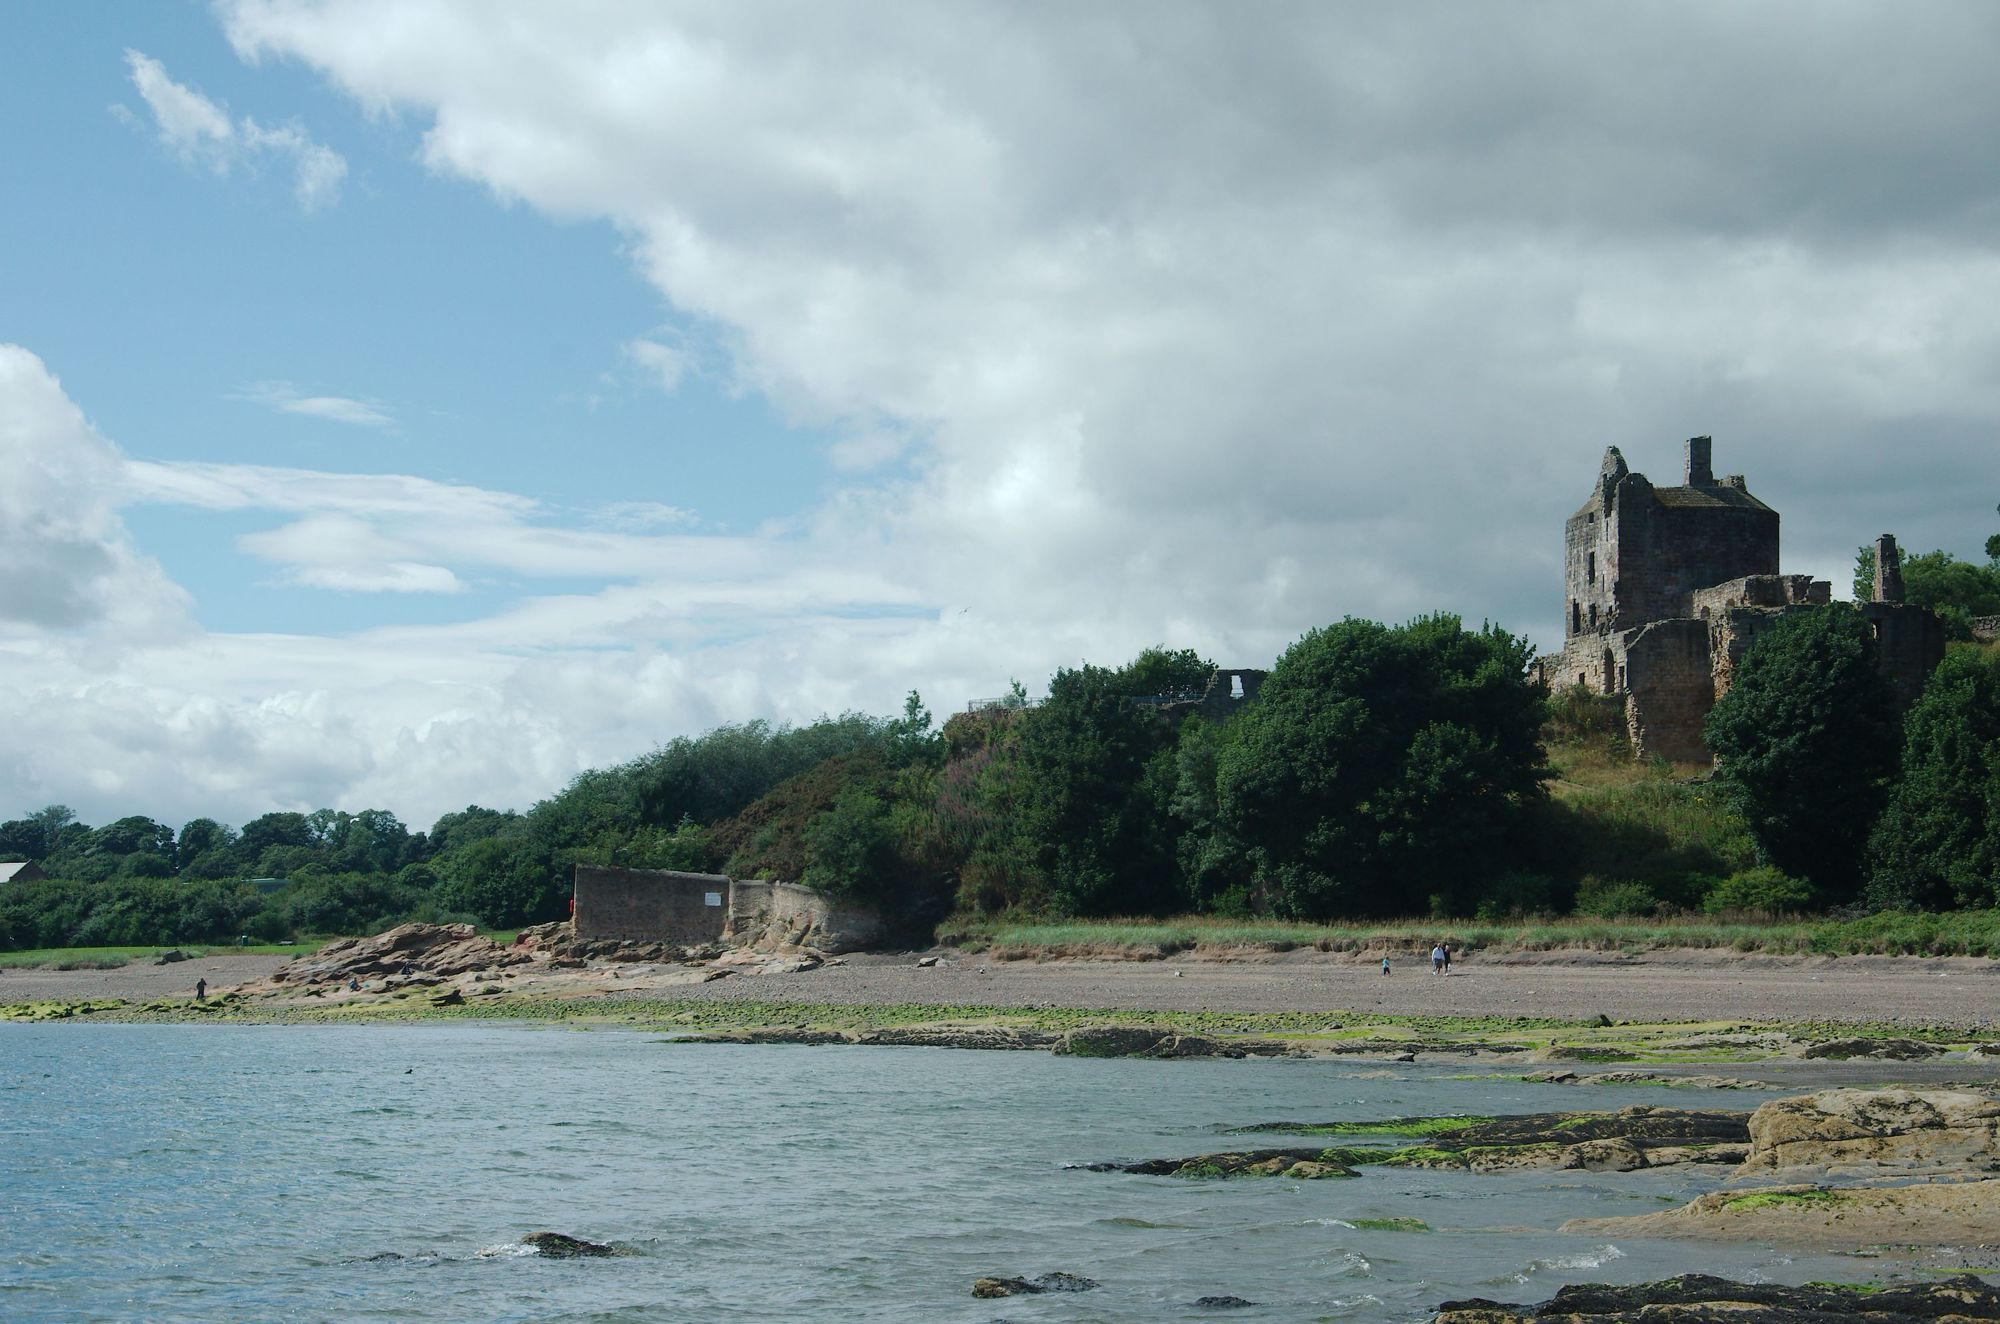 My cool place – Ravenscraig Beach, Fife, Scotland